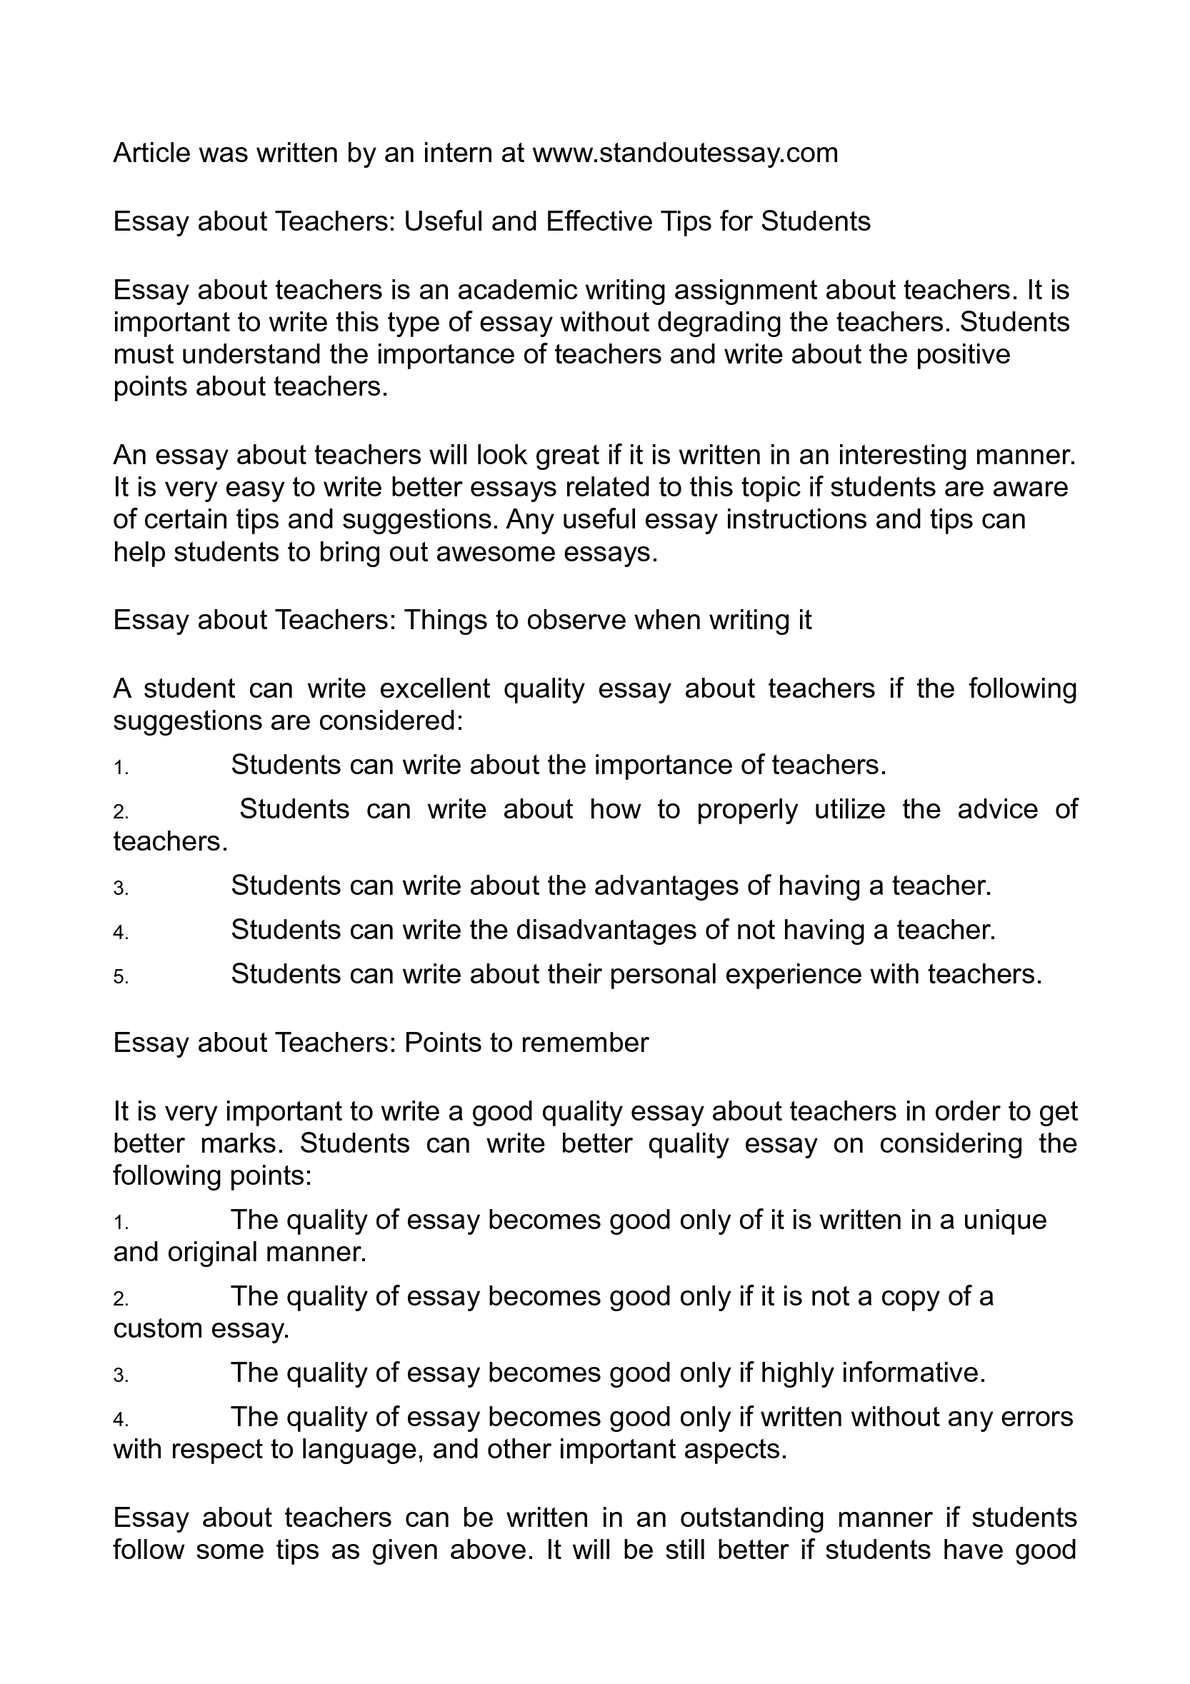 essay about teachers useful and effective tips for students